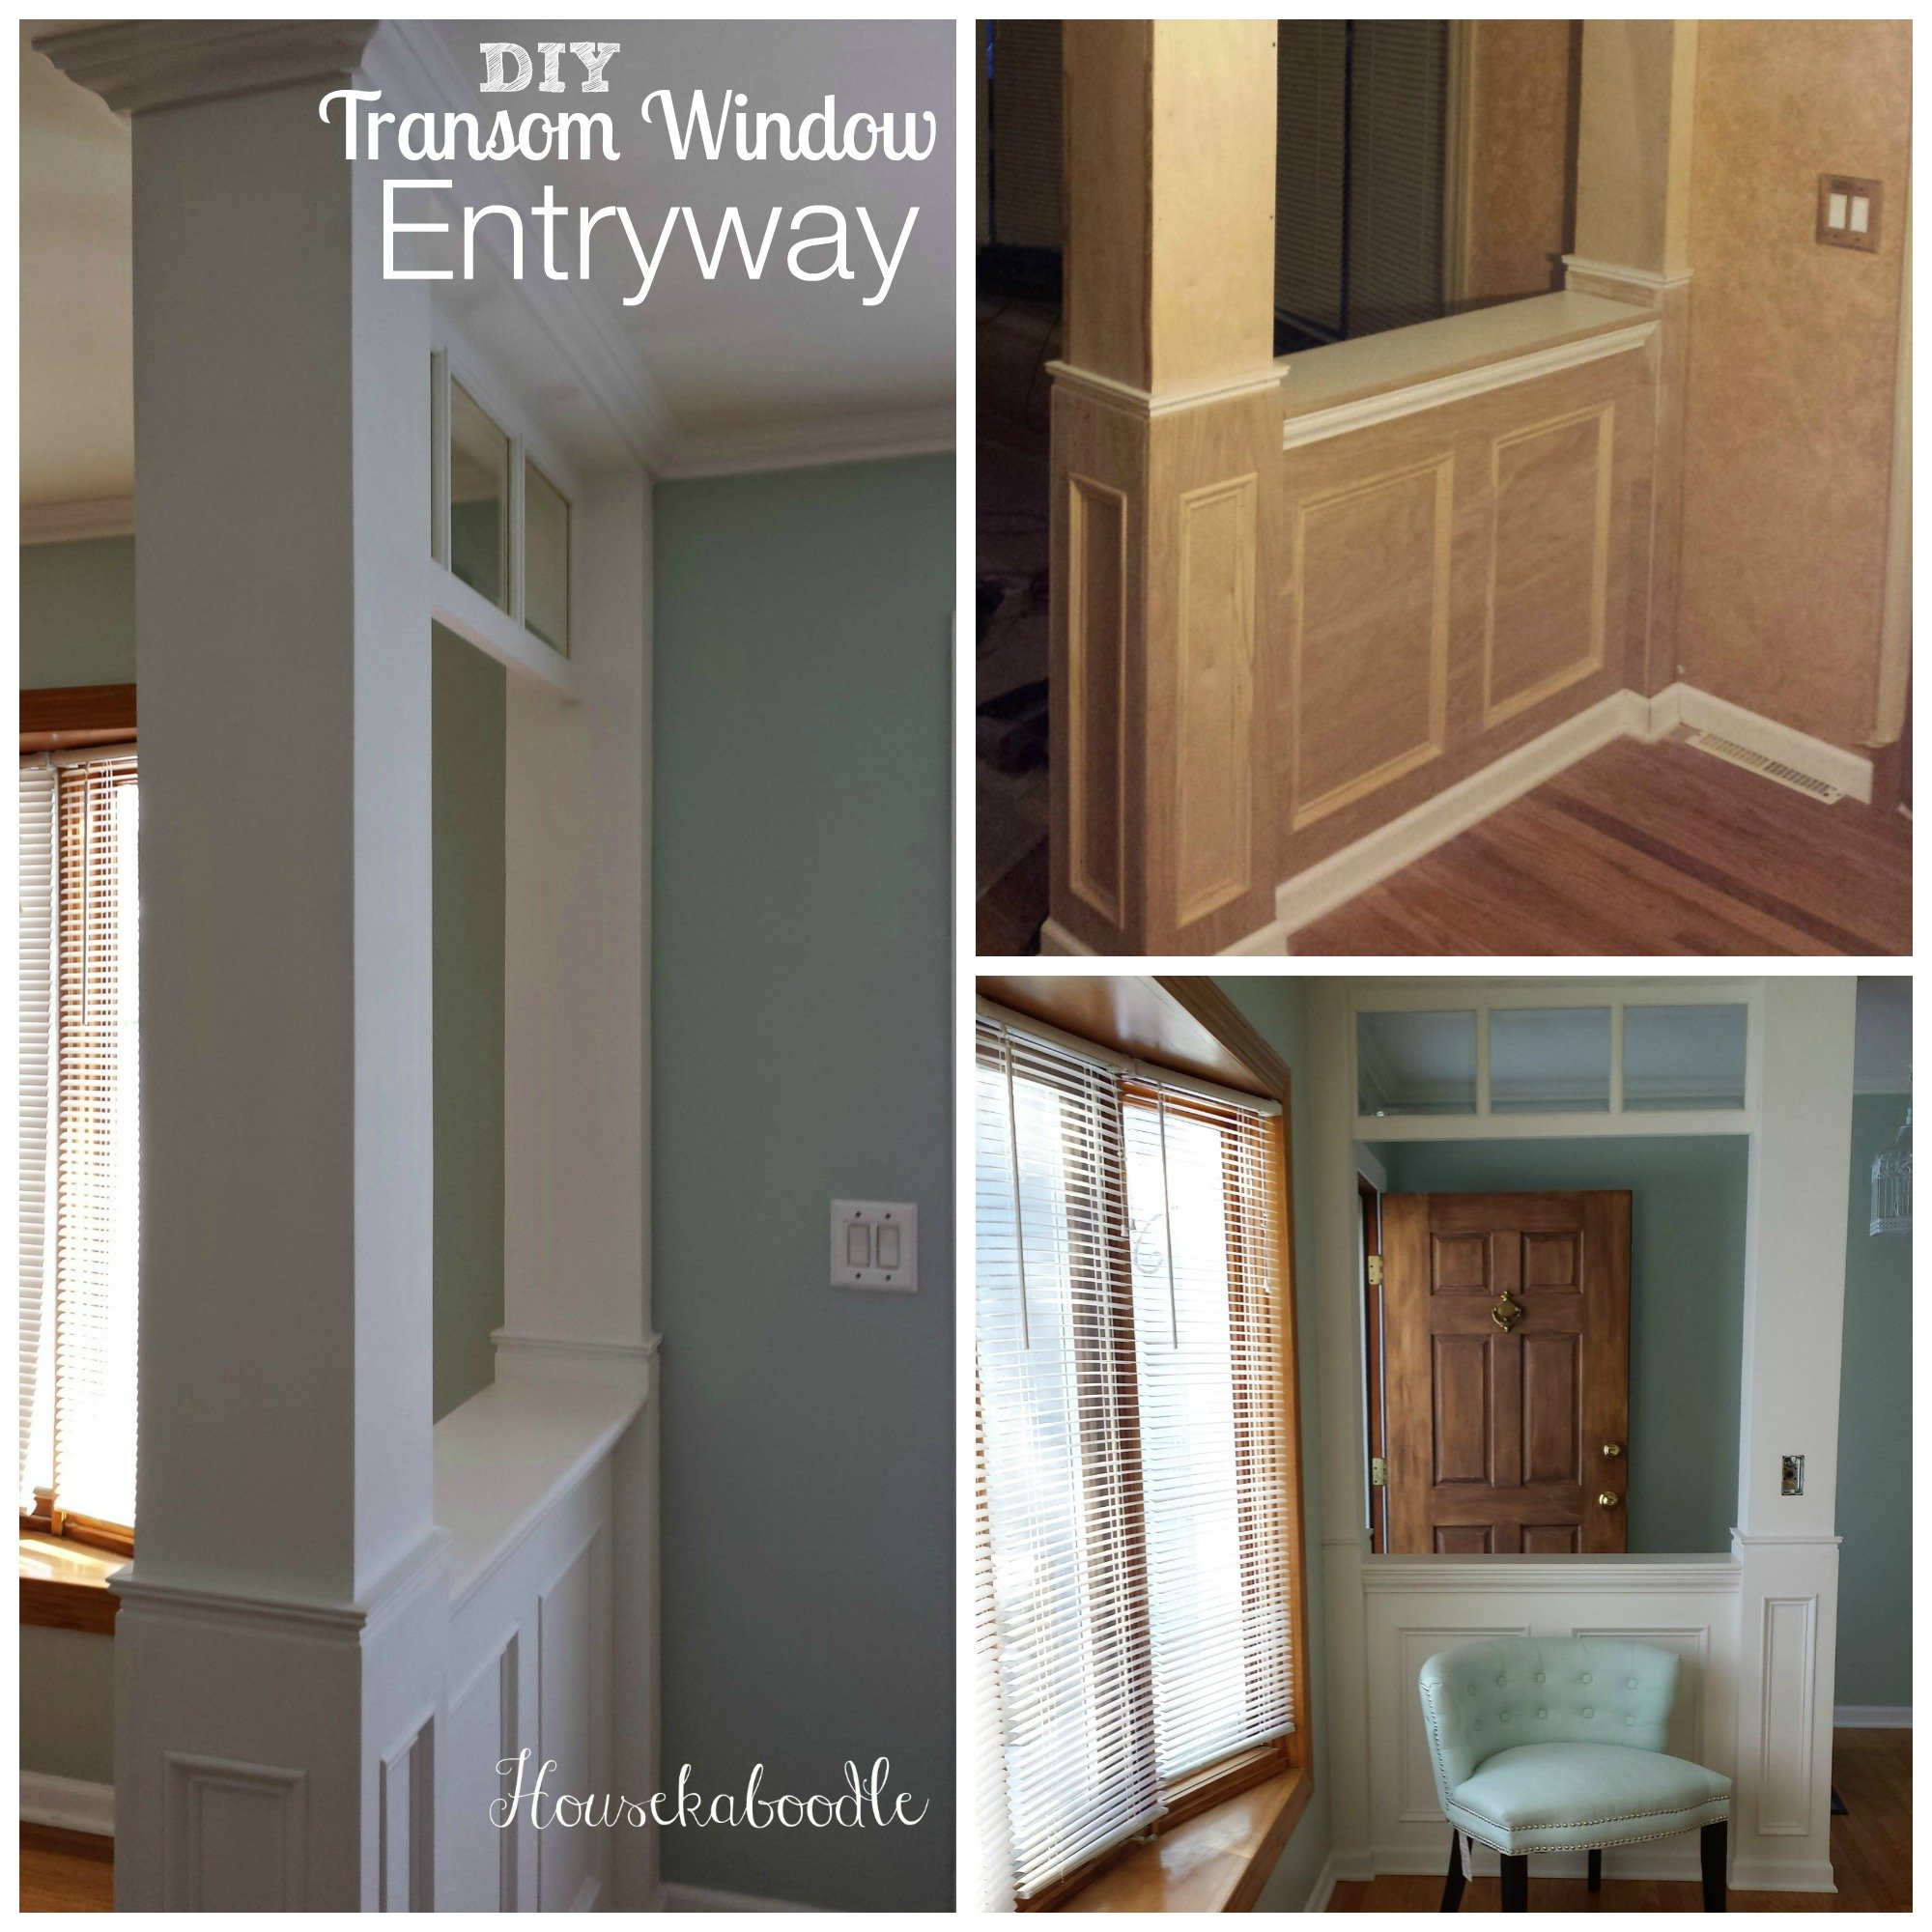 Difference Between Foyer And Entrance : Our diy transom window entryway